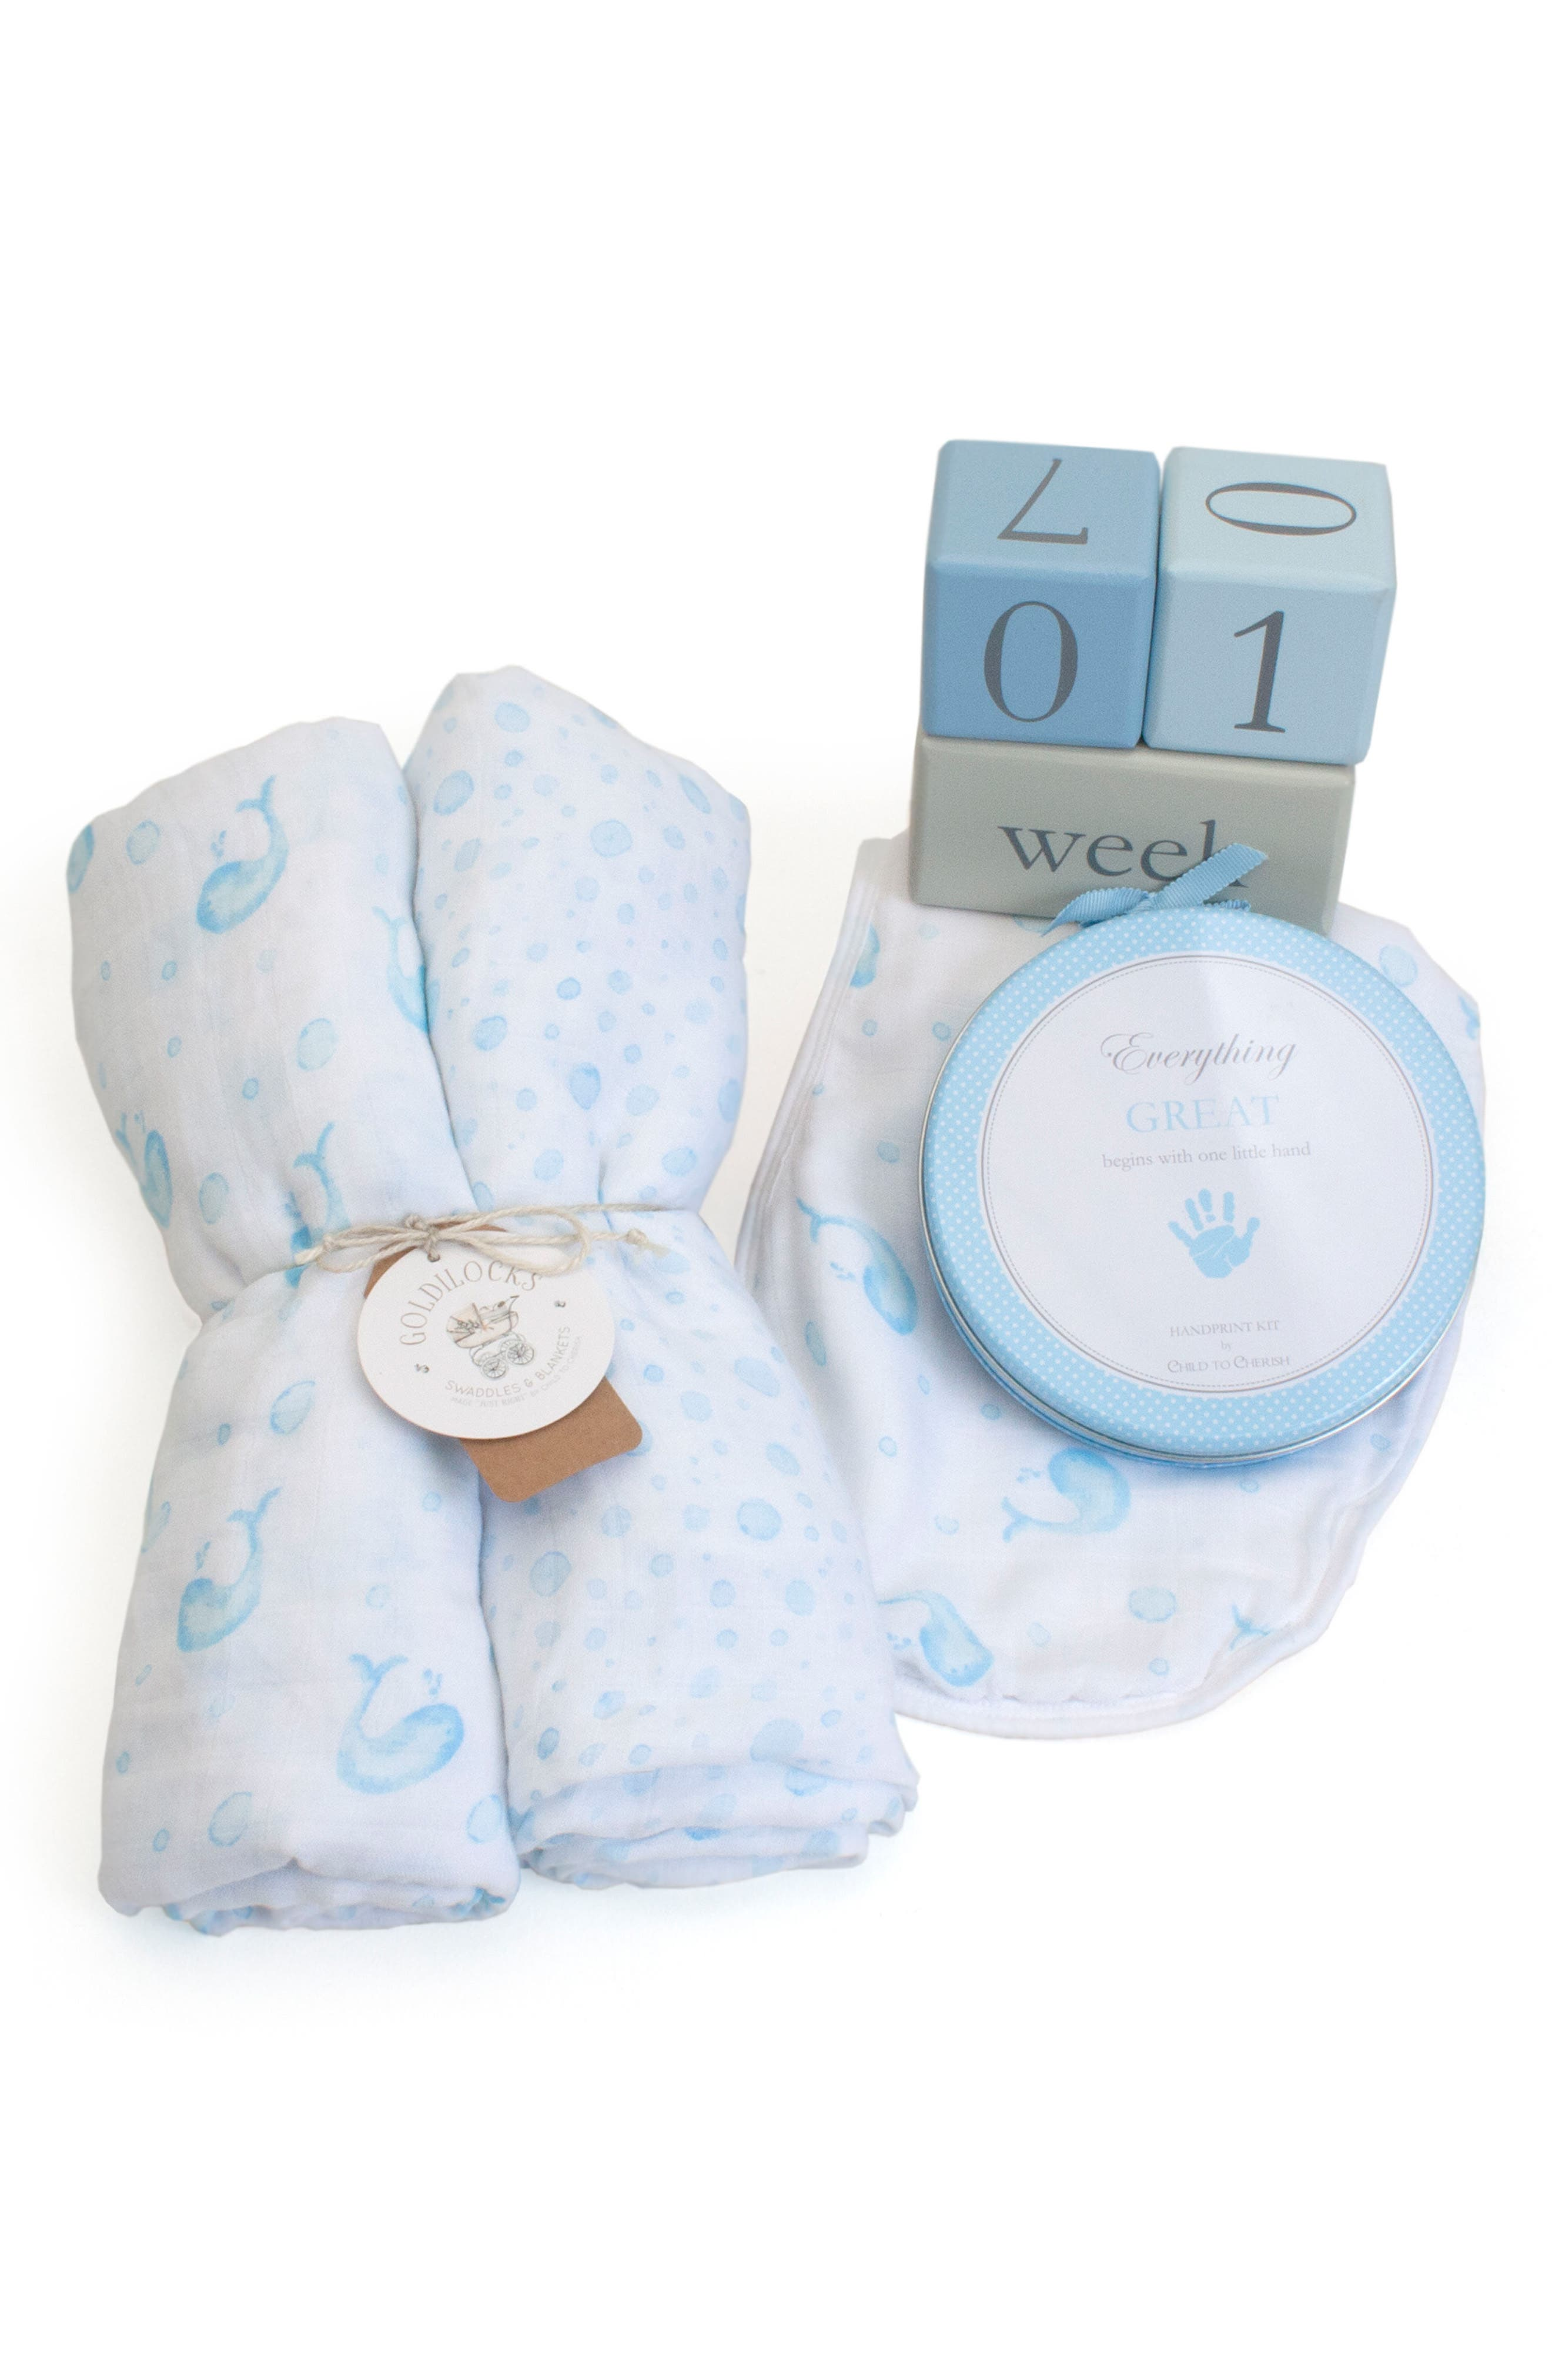 Bubbles & Whales Goldilocks Swaddle, Handprint & Photo Block Gift Set,                         Main,                         color, Blue Whale/ Bubbles